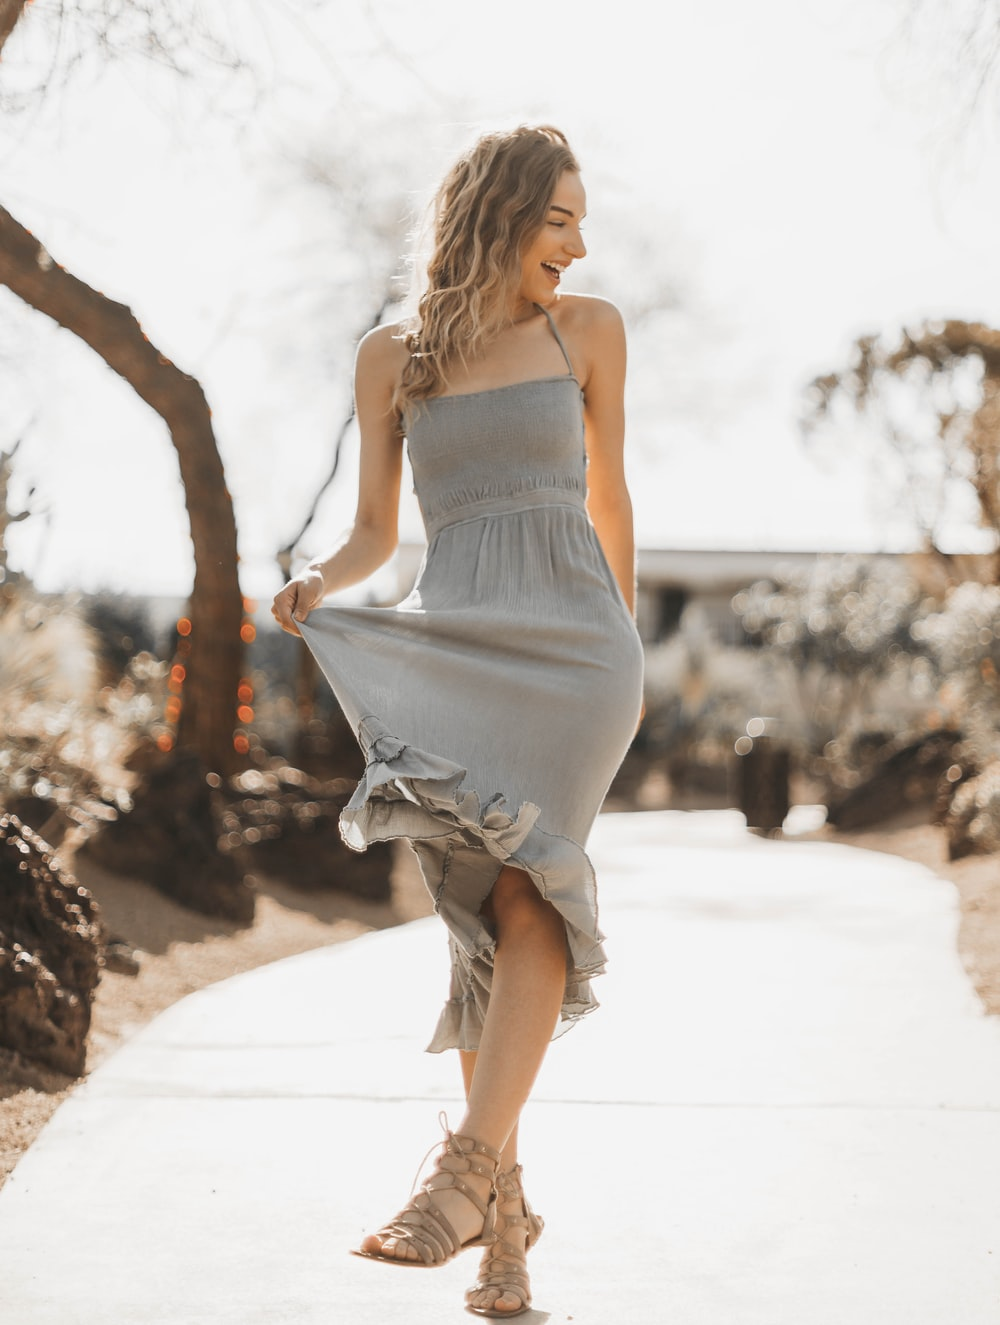 woman in gray dress standing on the pathway